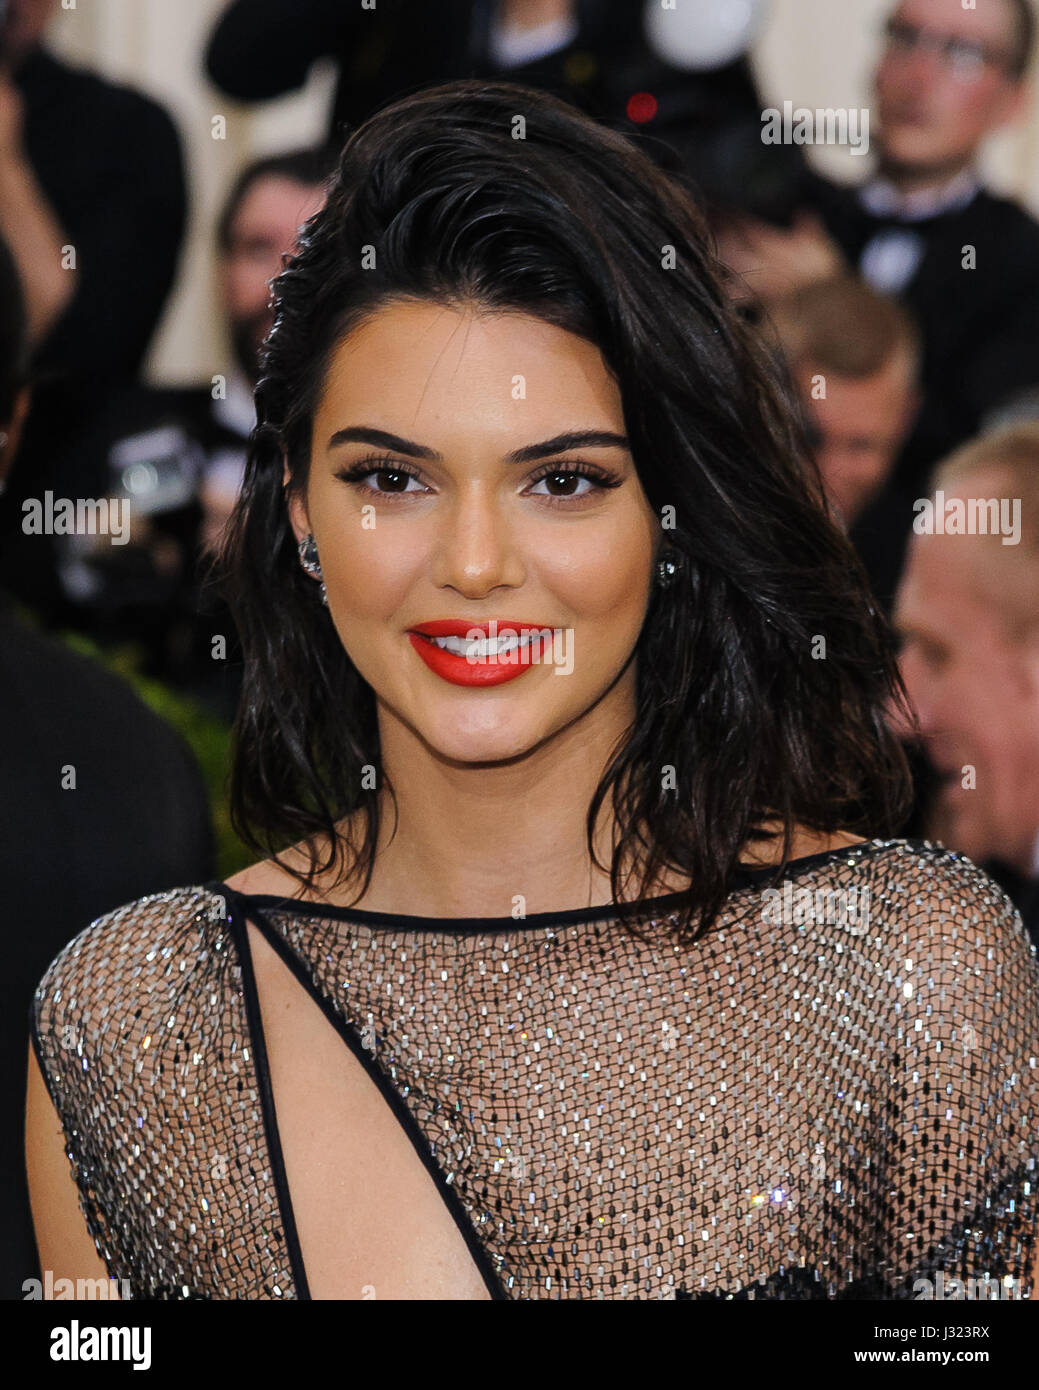 New York, NY, USA. 1. Mai 2017. Kendall Jenner. 2017 Metropolitan Museum of Art Costume Institute-Benefiz-Gala im Stockbild